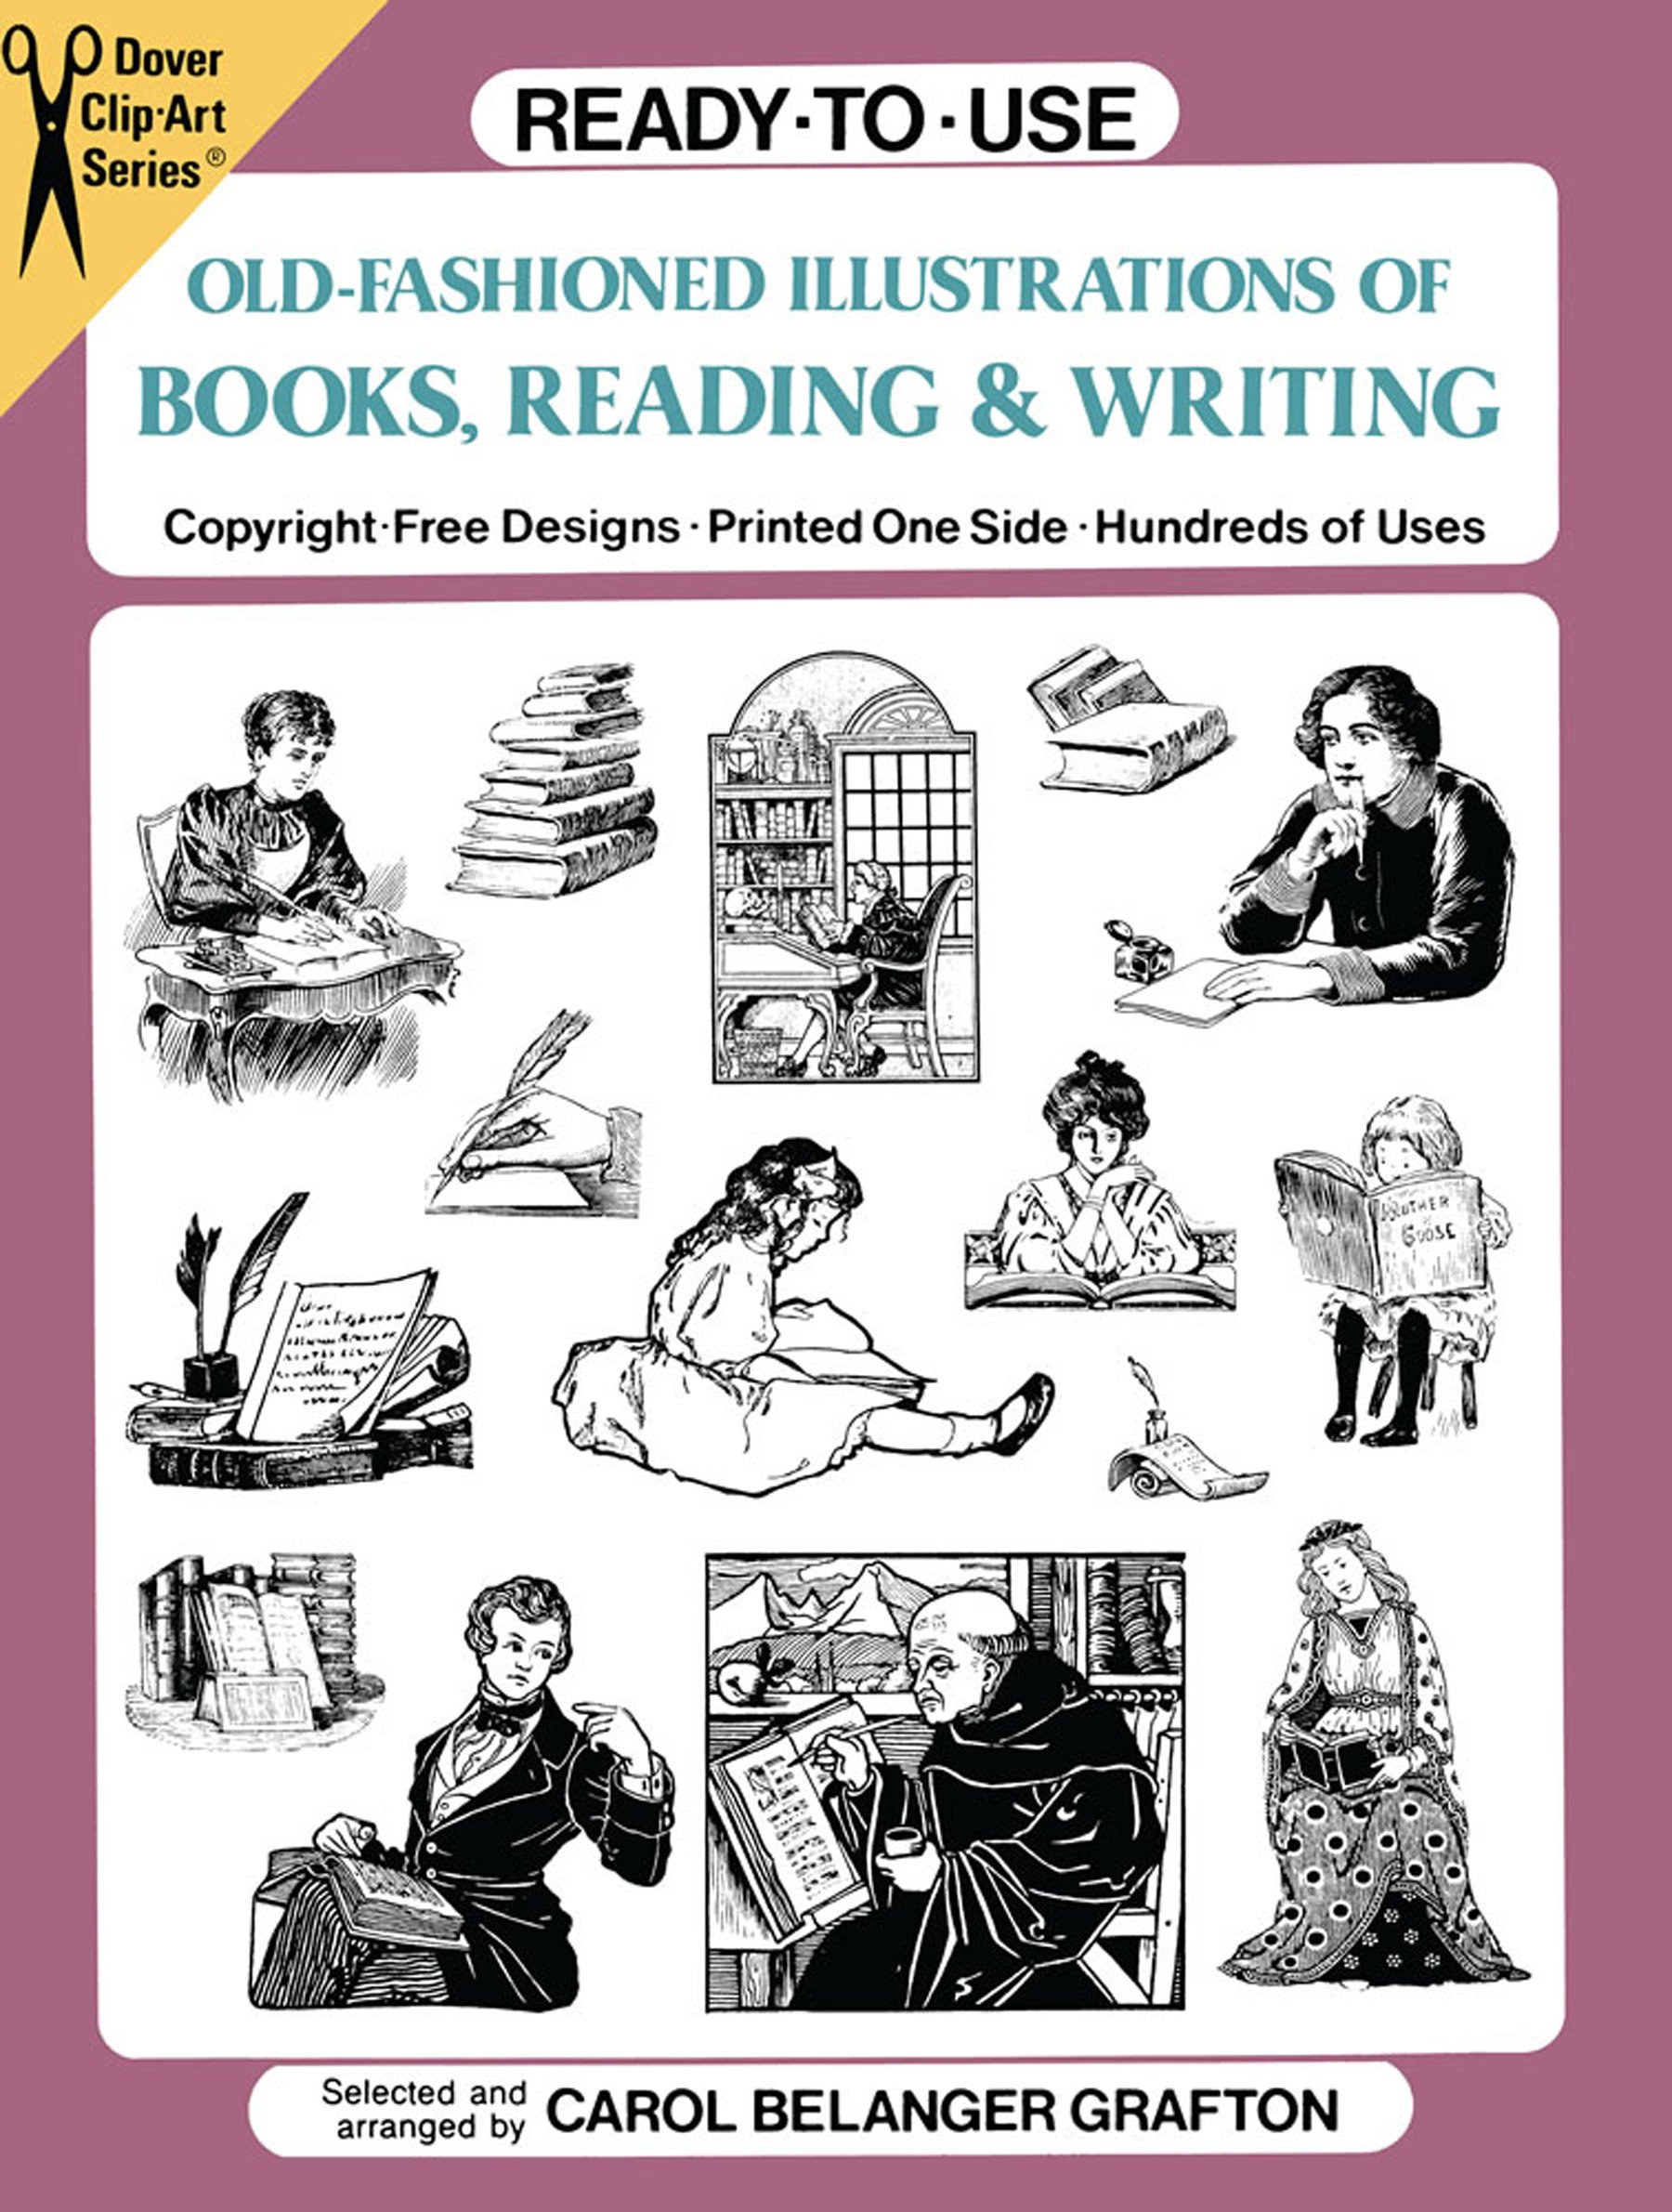 ready-to-use-old-fashioned-illustrations-of-books-reading-and-writing-dover-clip-art-ready-to-use